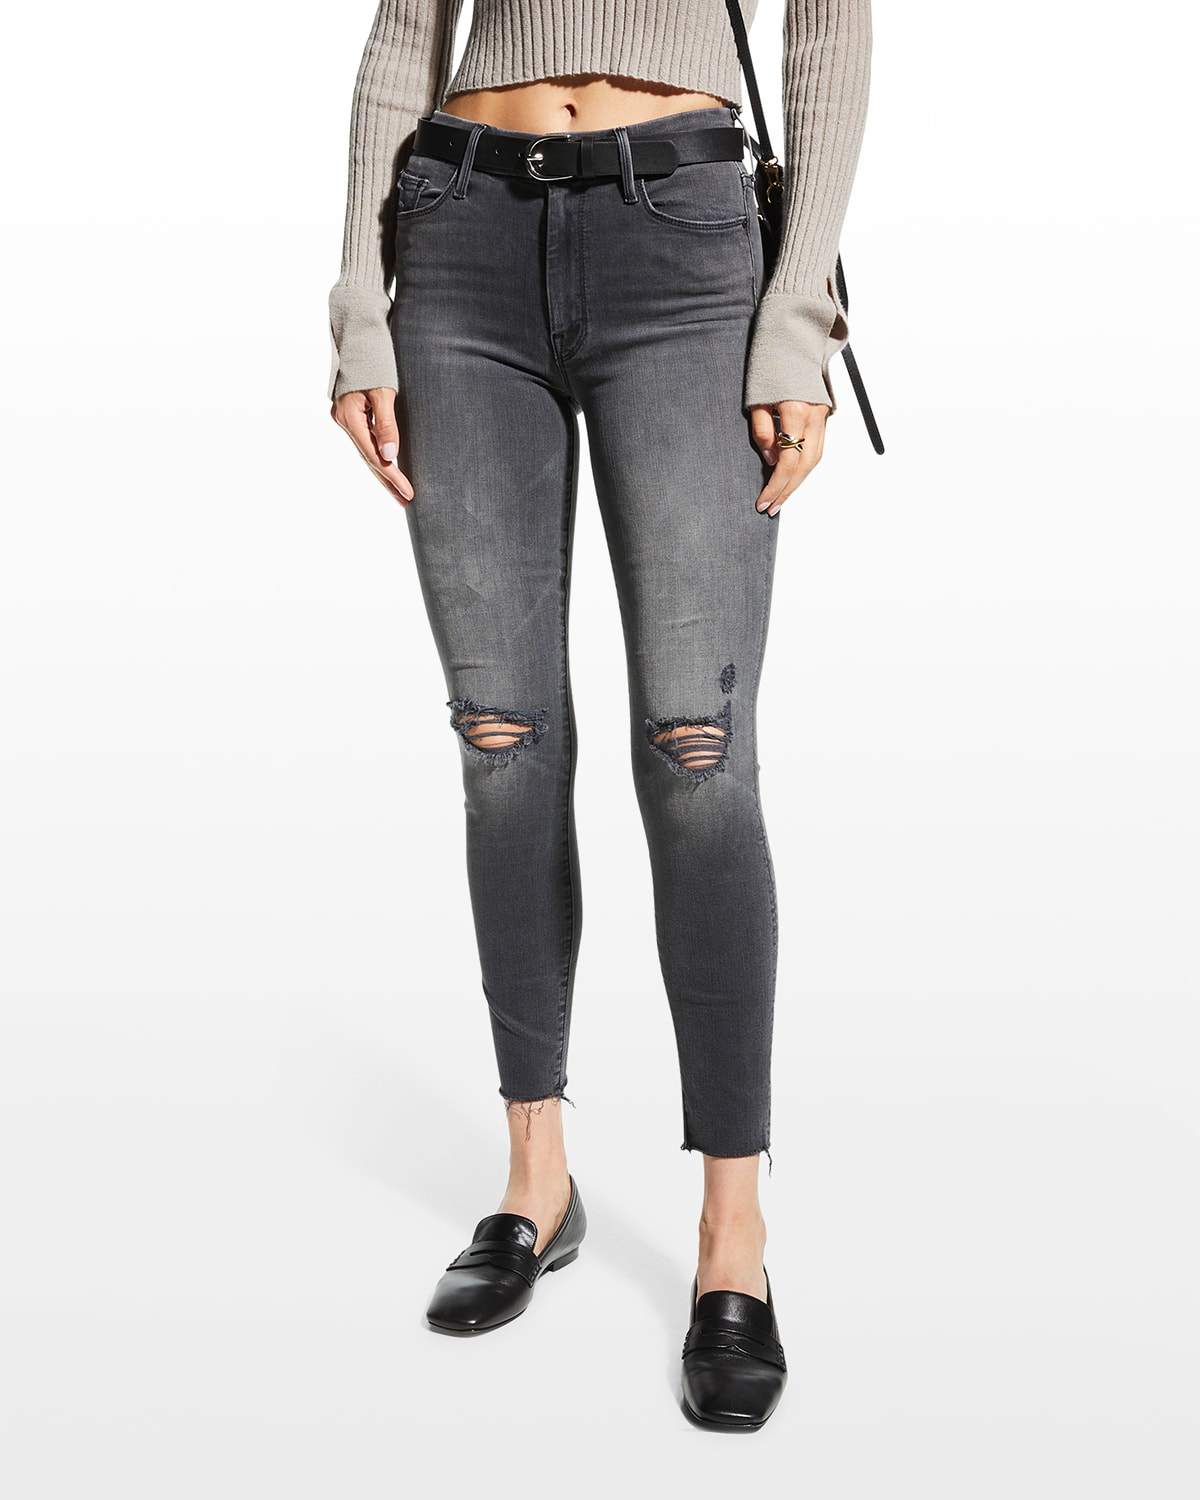 Looker Ankle Fray Distressed Jeans